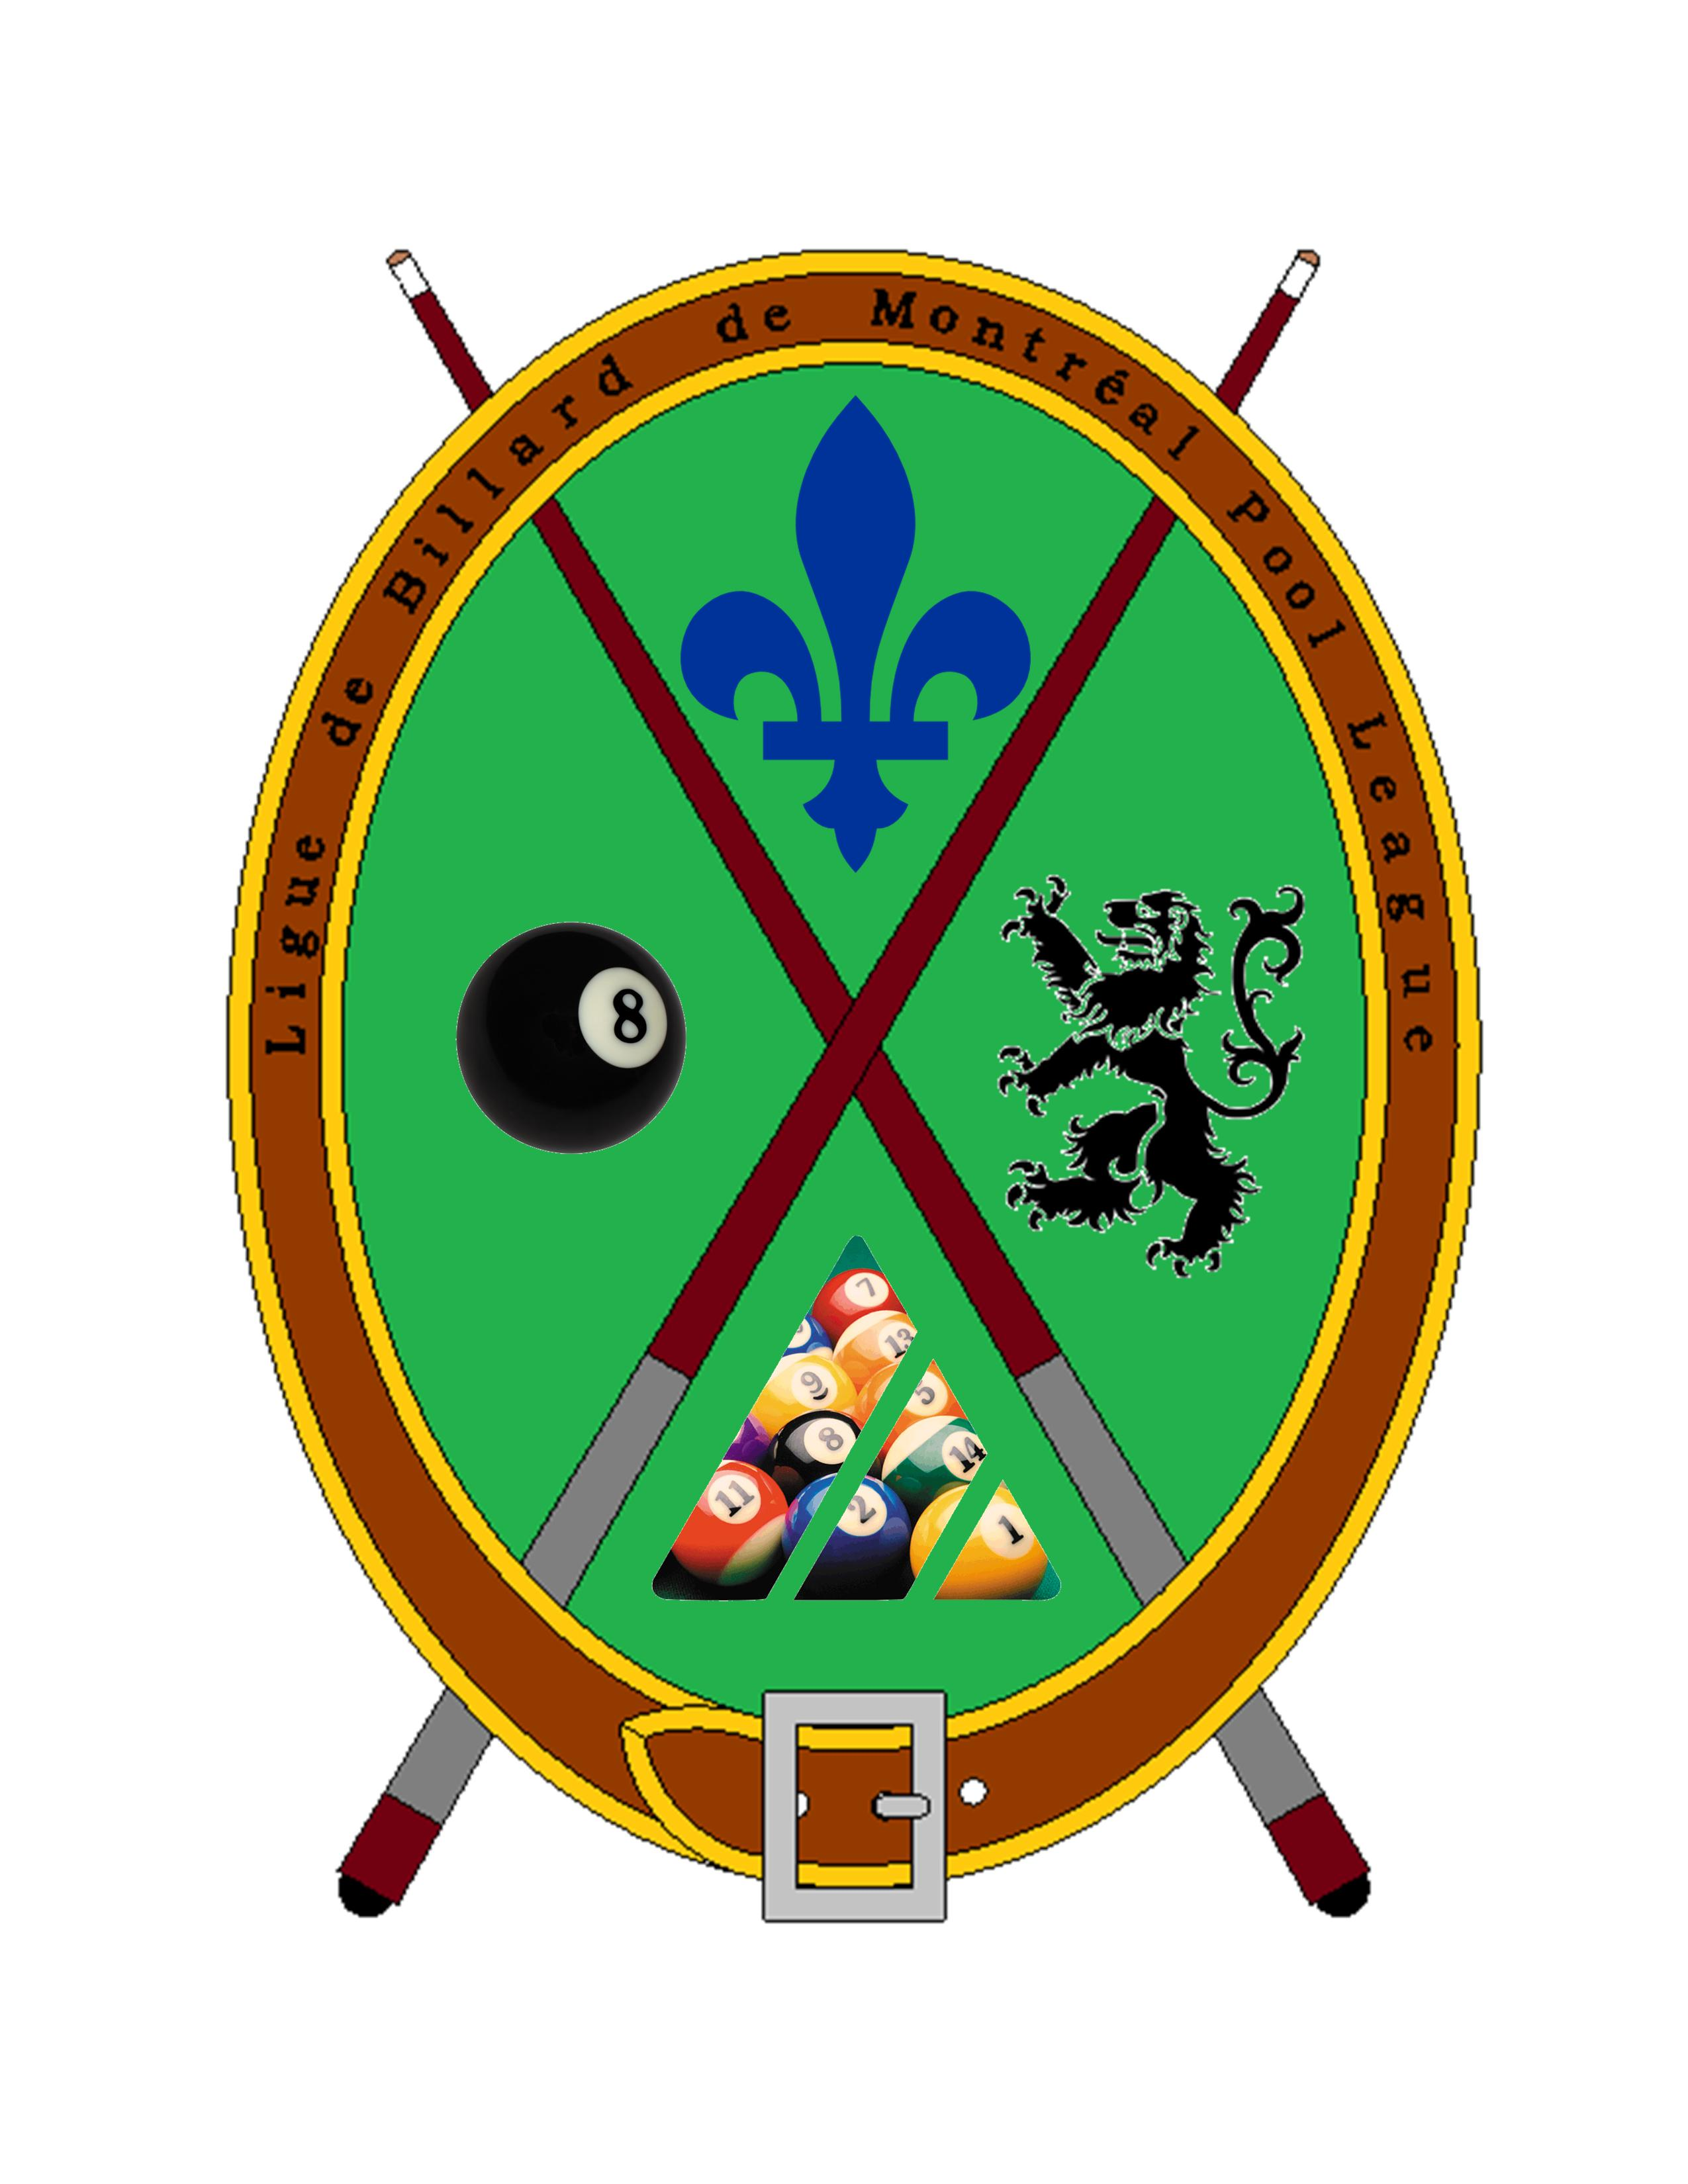 Montreal Pool League